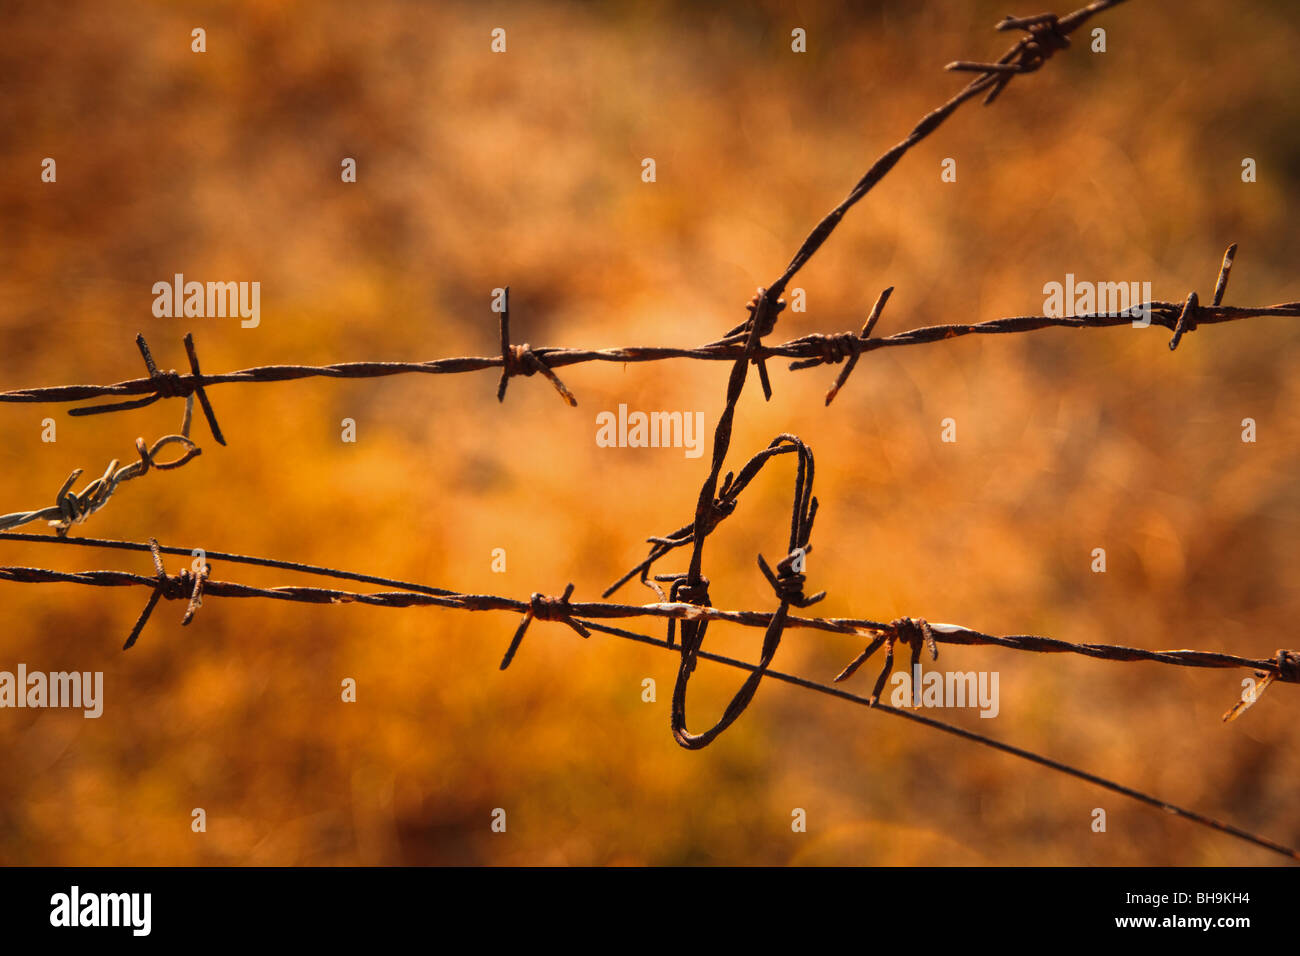 Tangled barbed wire - Stock Image